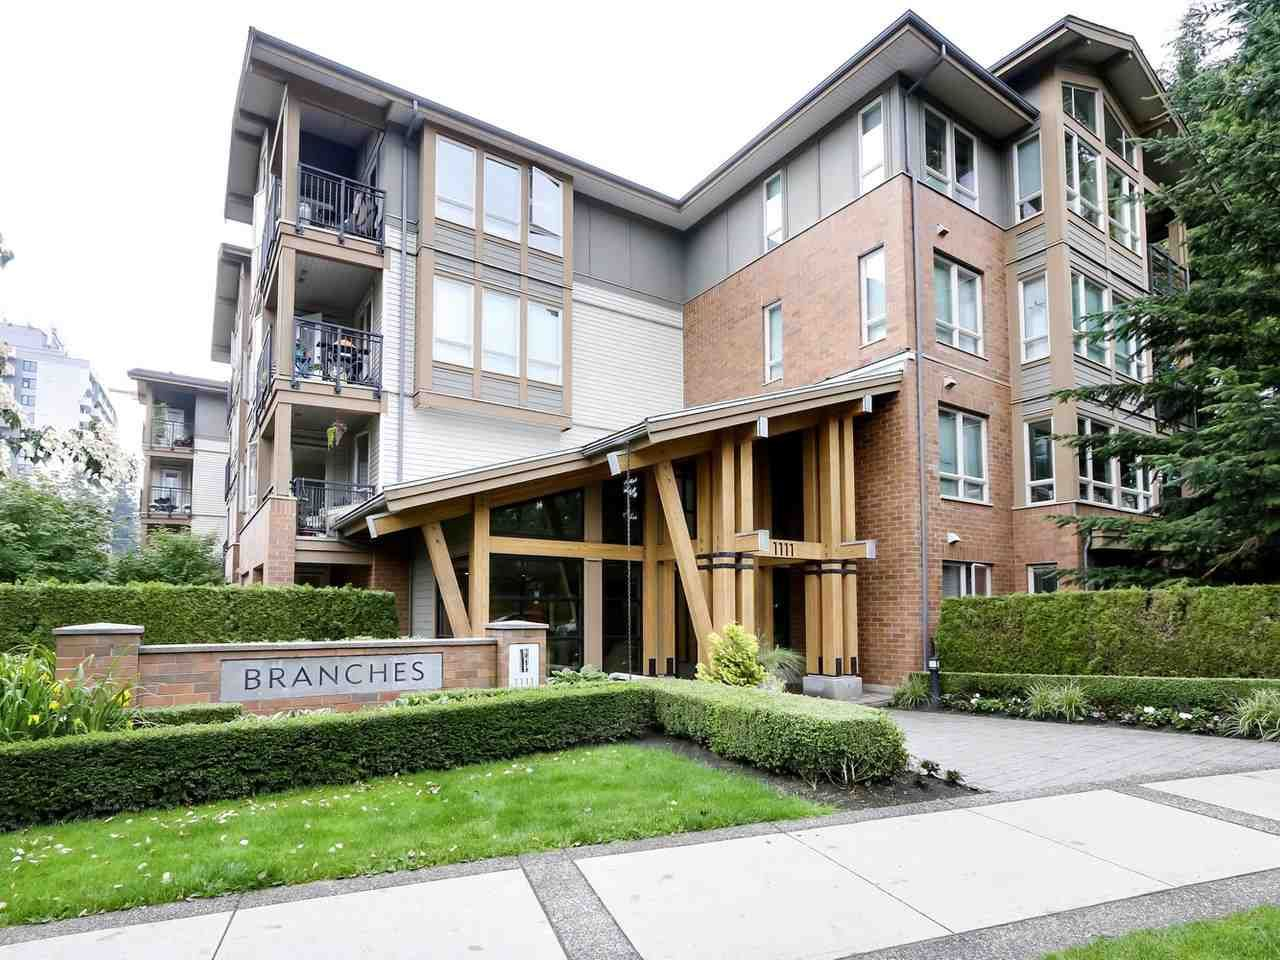 """Main Photo: 114 1111 E 27TH Street in North Vancouver: Lynn Valley Condo for sale in """"Branches"""" : MLS®# R2469036"""